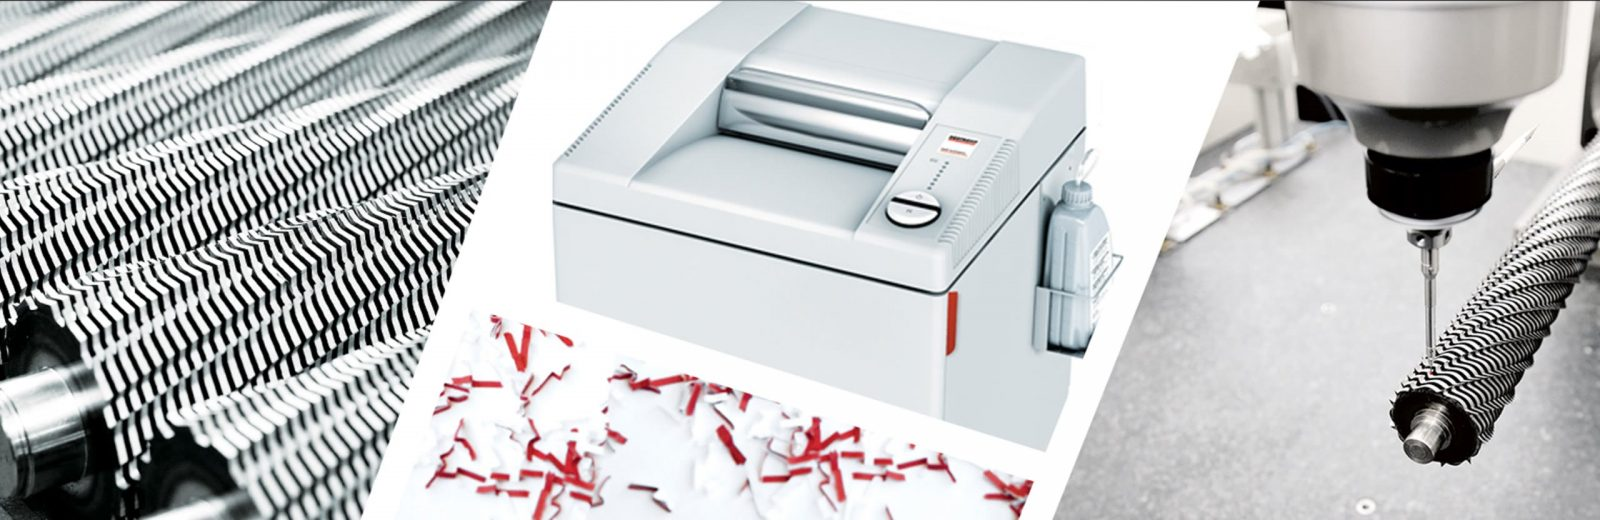 paper shredders and coils